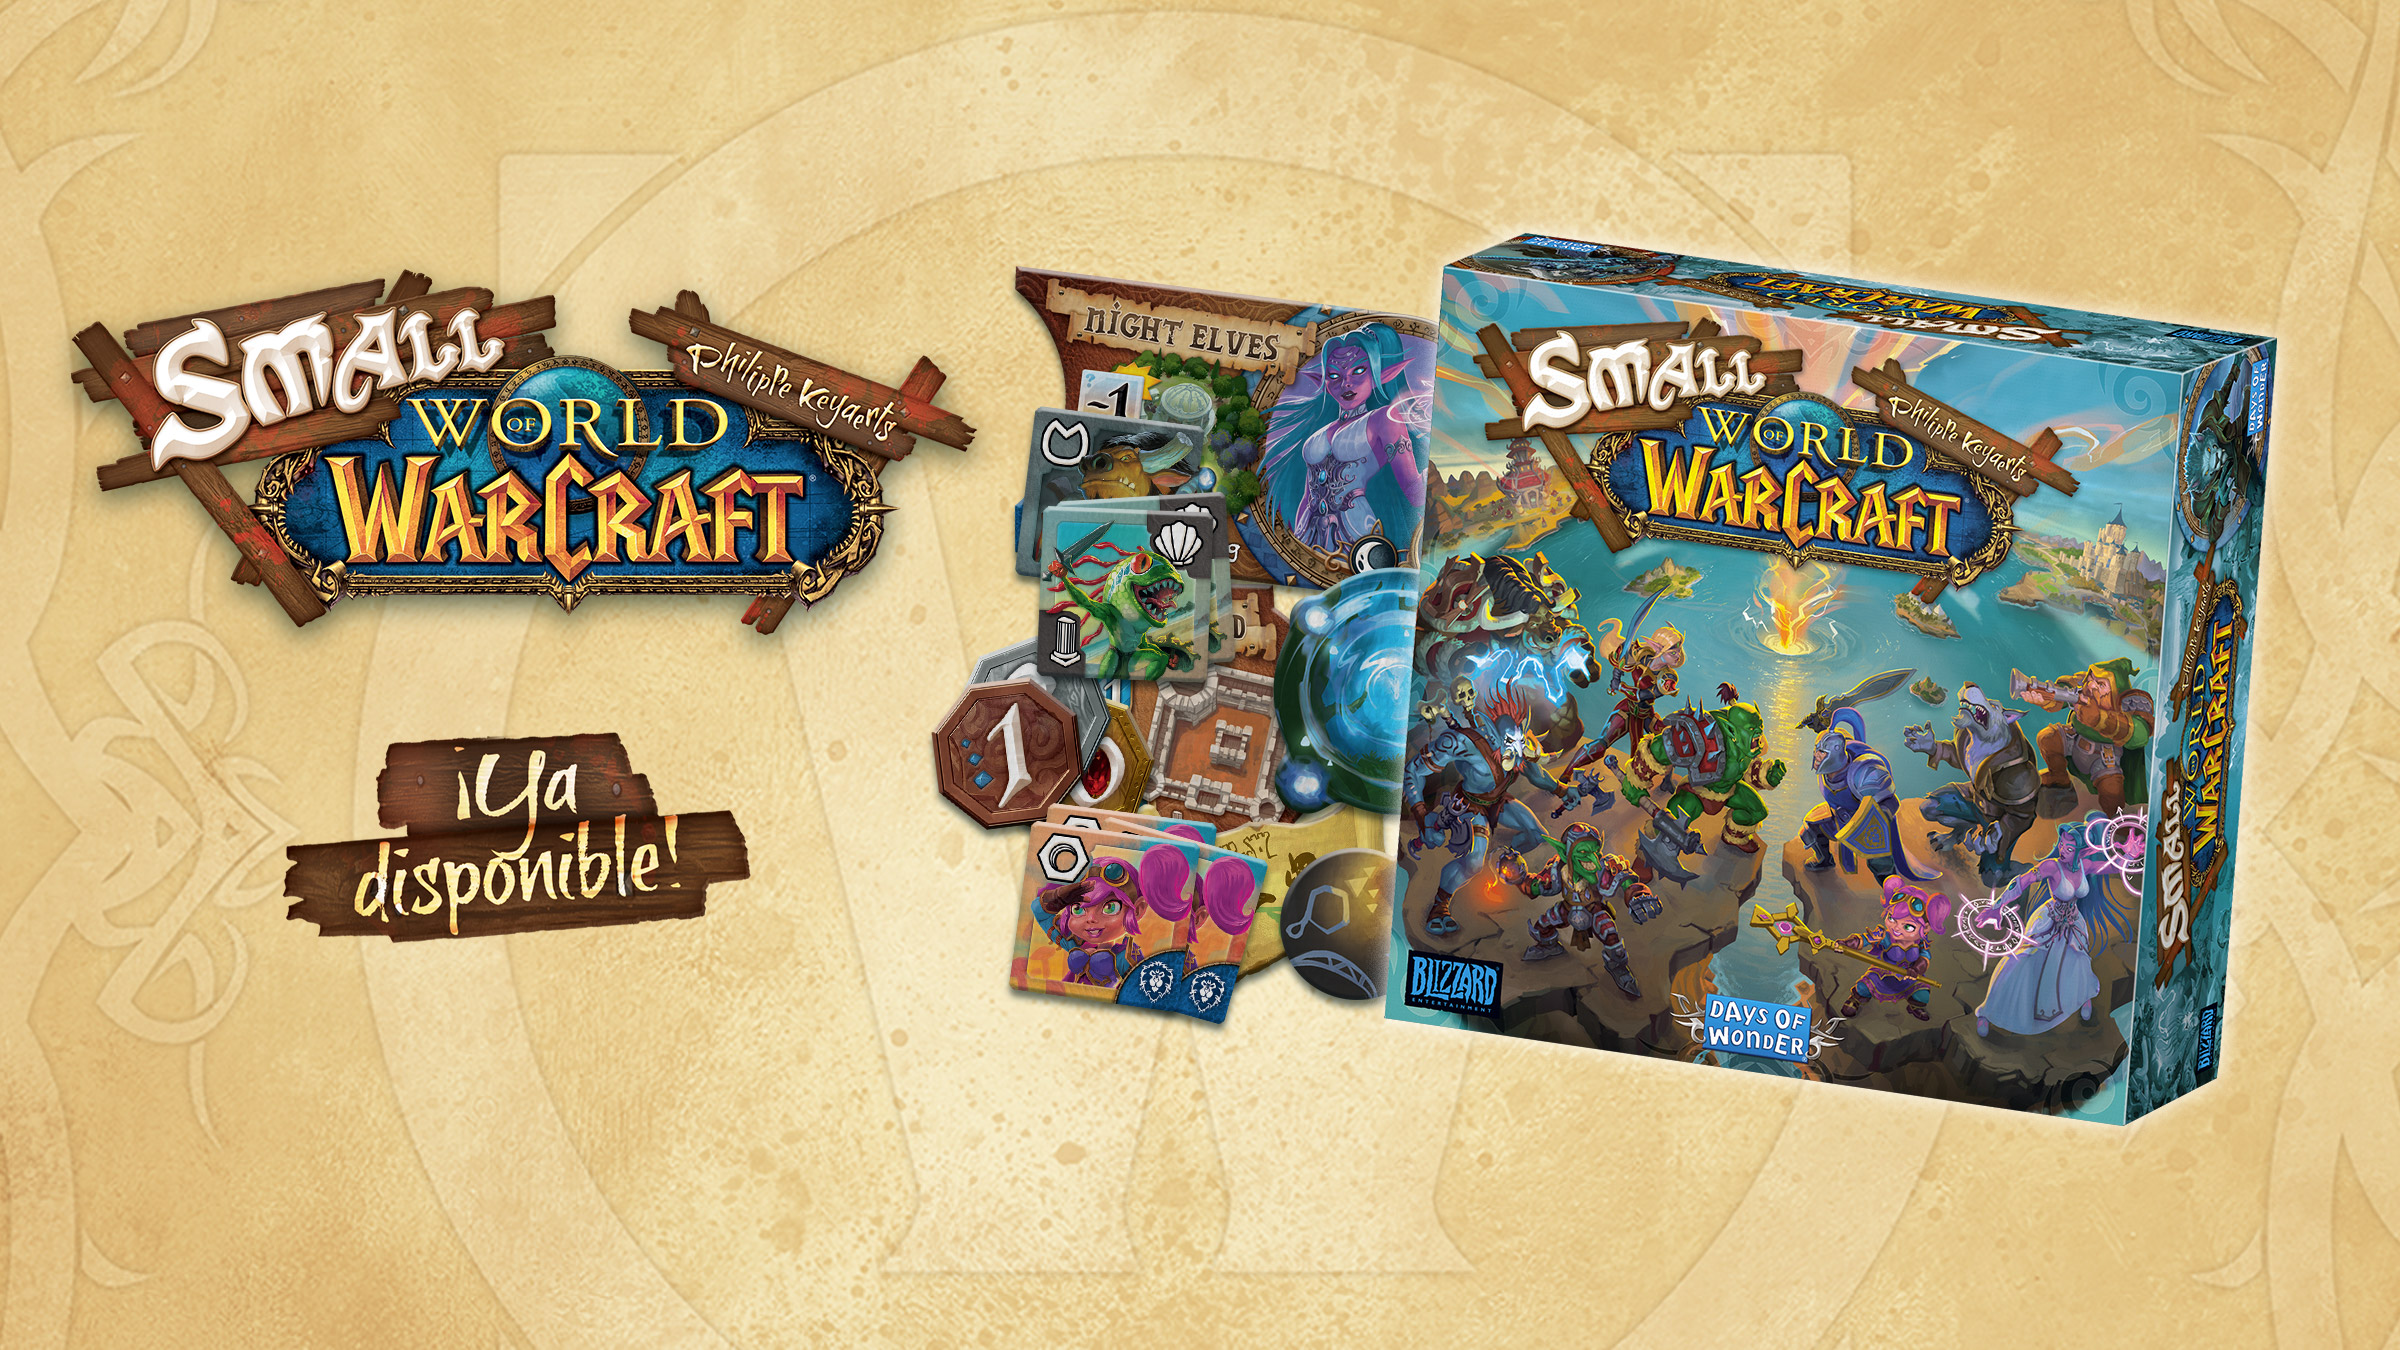 Small World of Warcraft ya está disponible